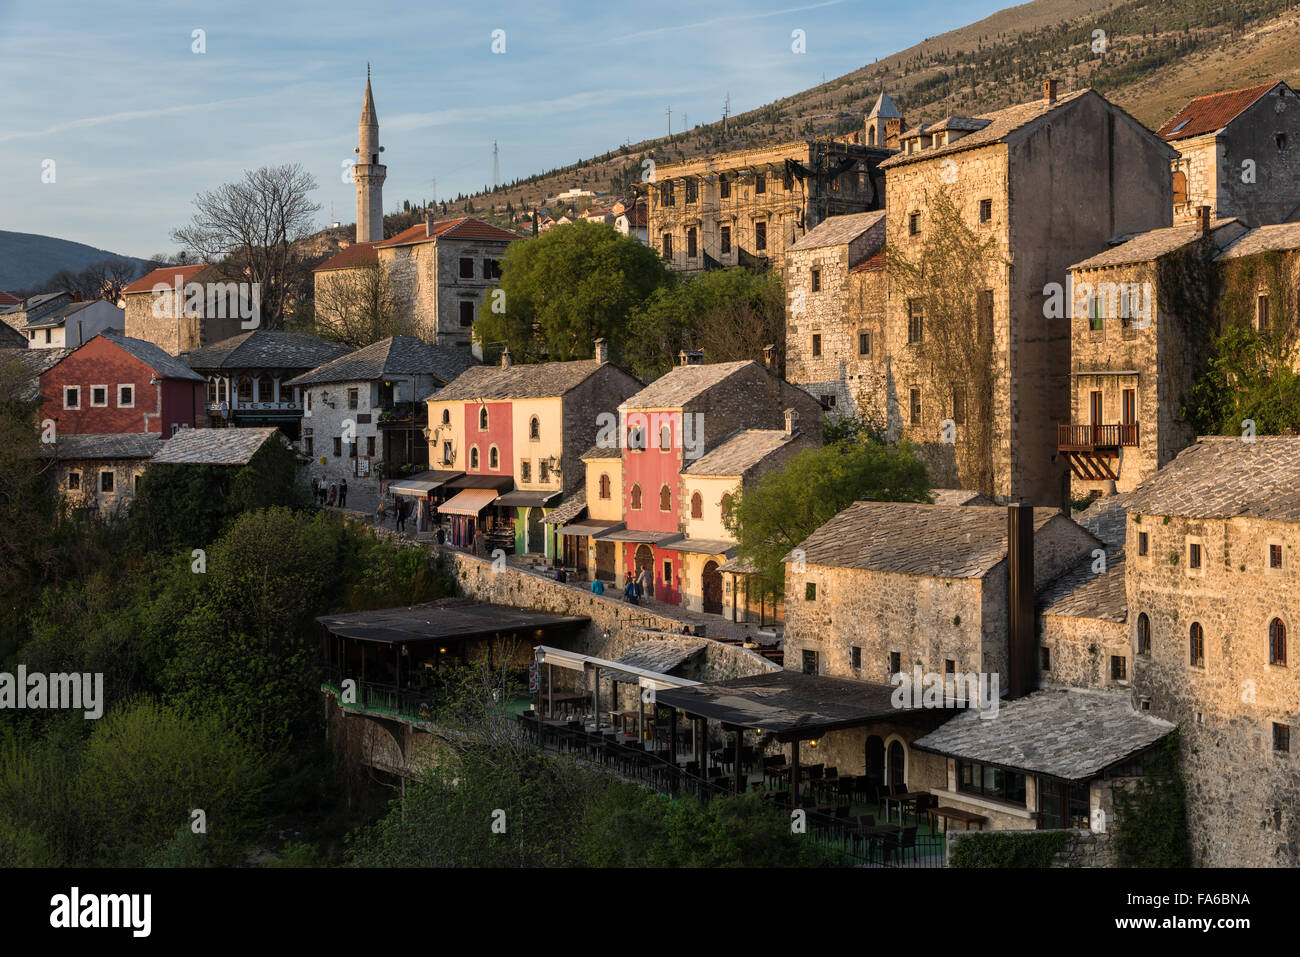 Colorful houses at sunset in Mostar, Bosnia and Herzegovina - Stock Image